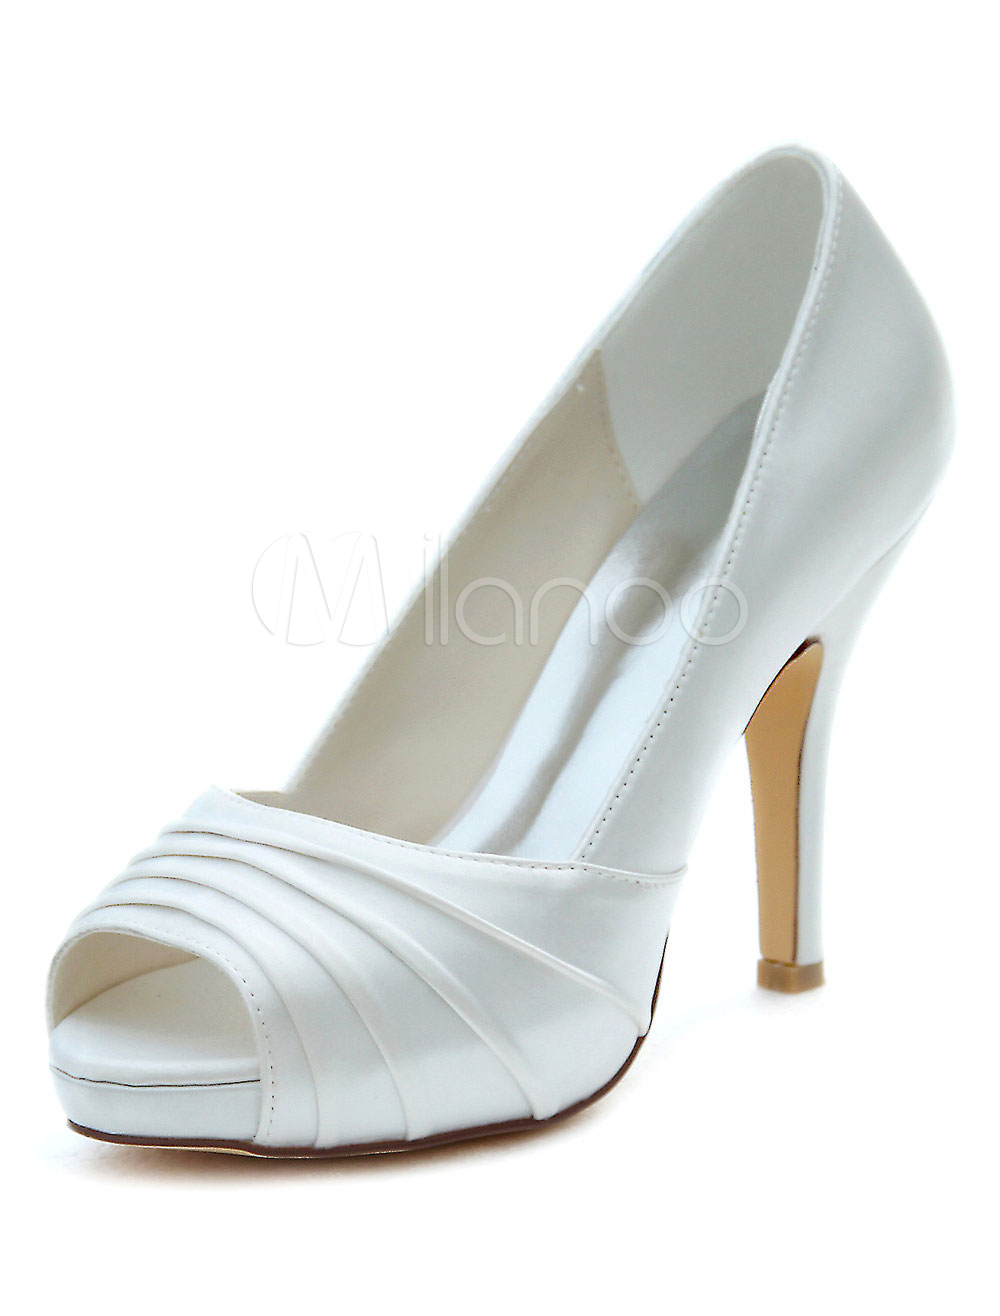 Ivory Wedding Shoes High Heel Peep Pumps Platform Pleated Slip-on Bridal Shoes